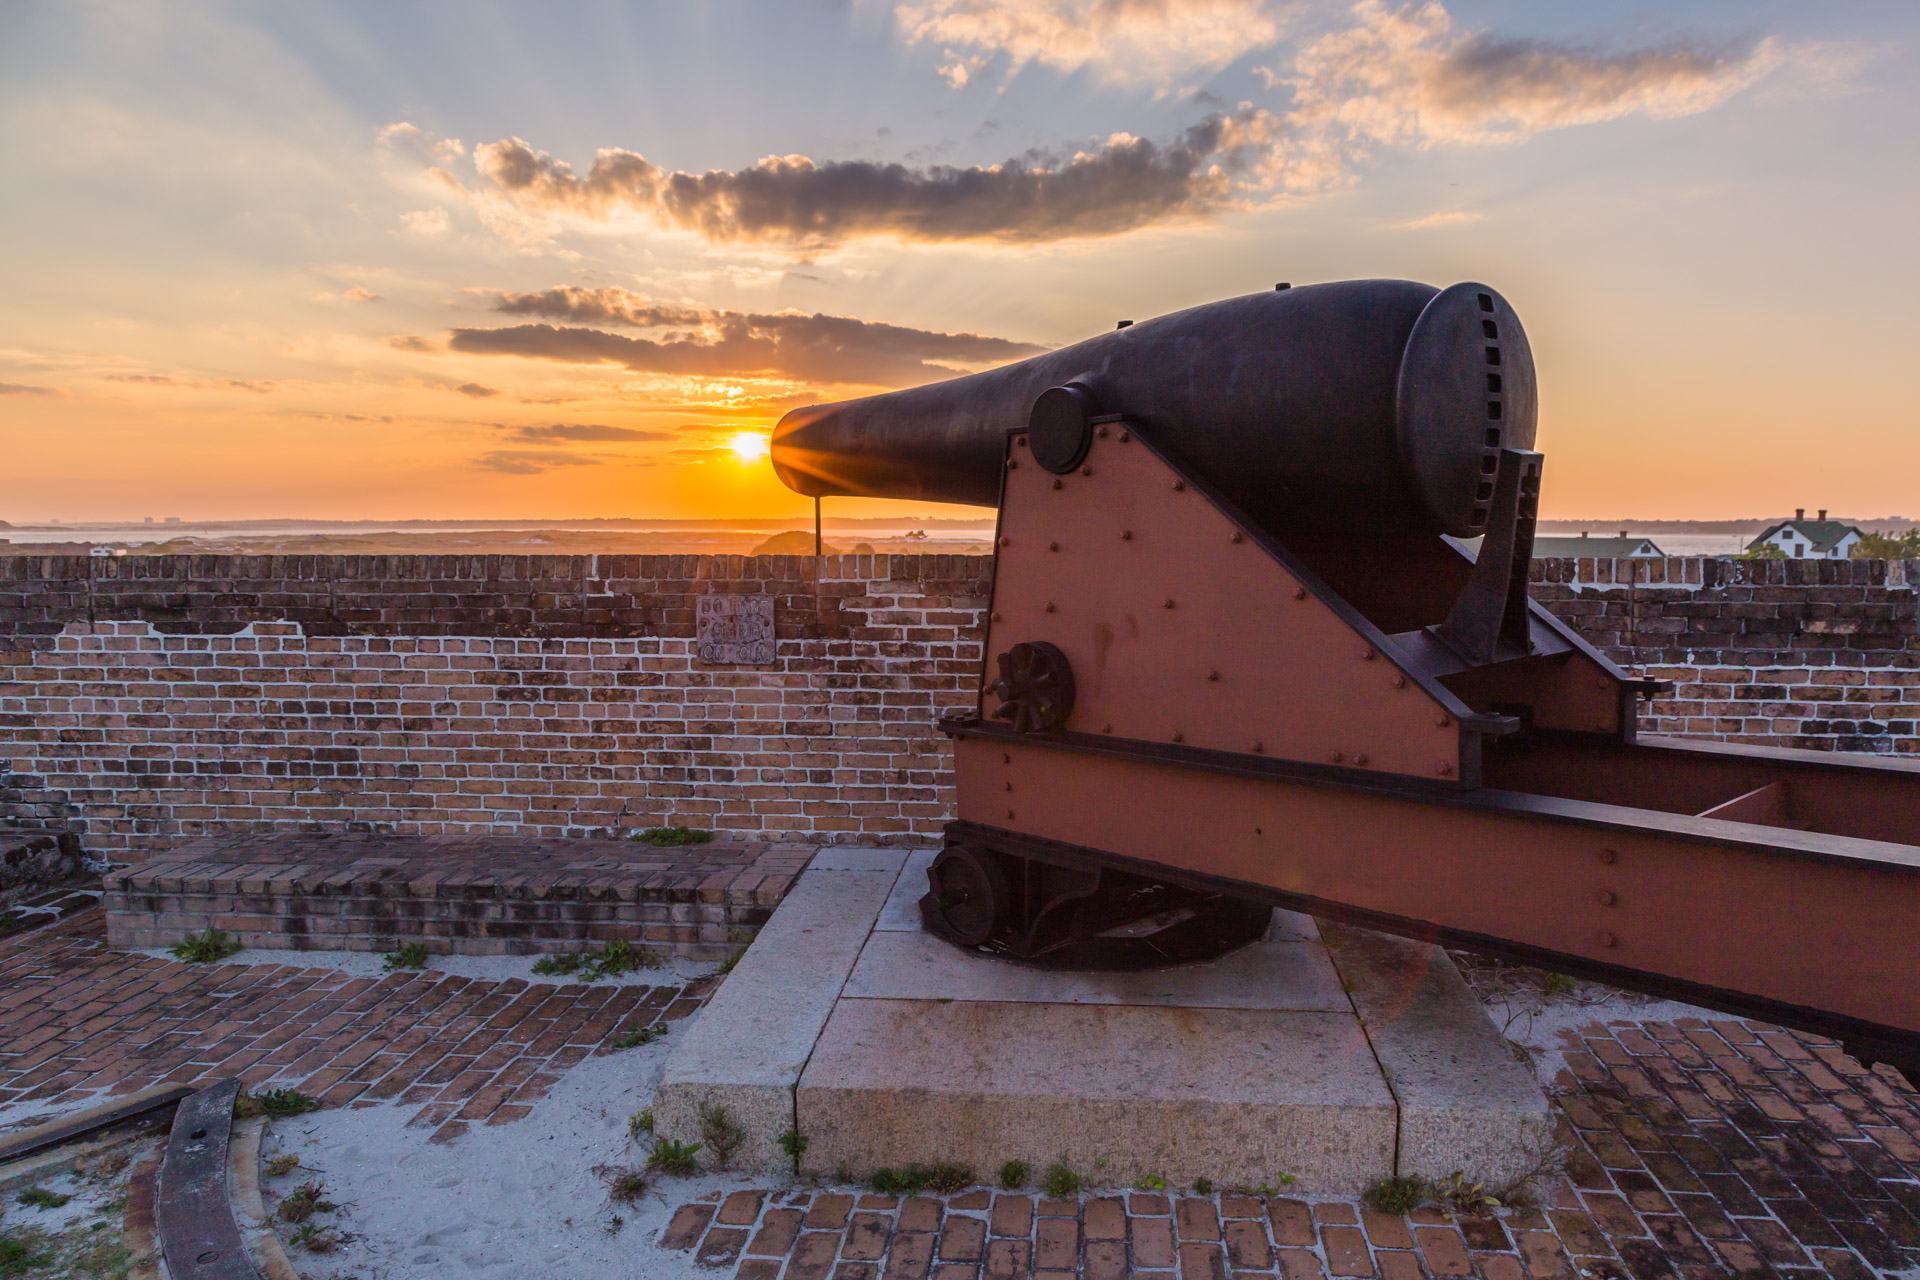 Fort Pickens (canon side)